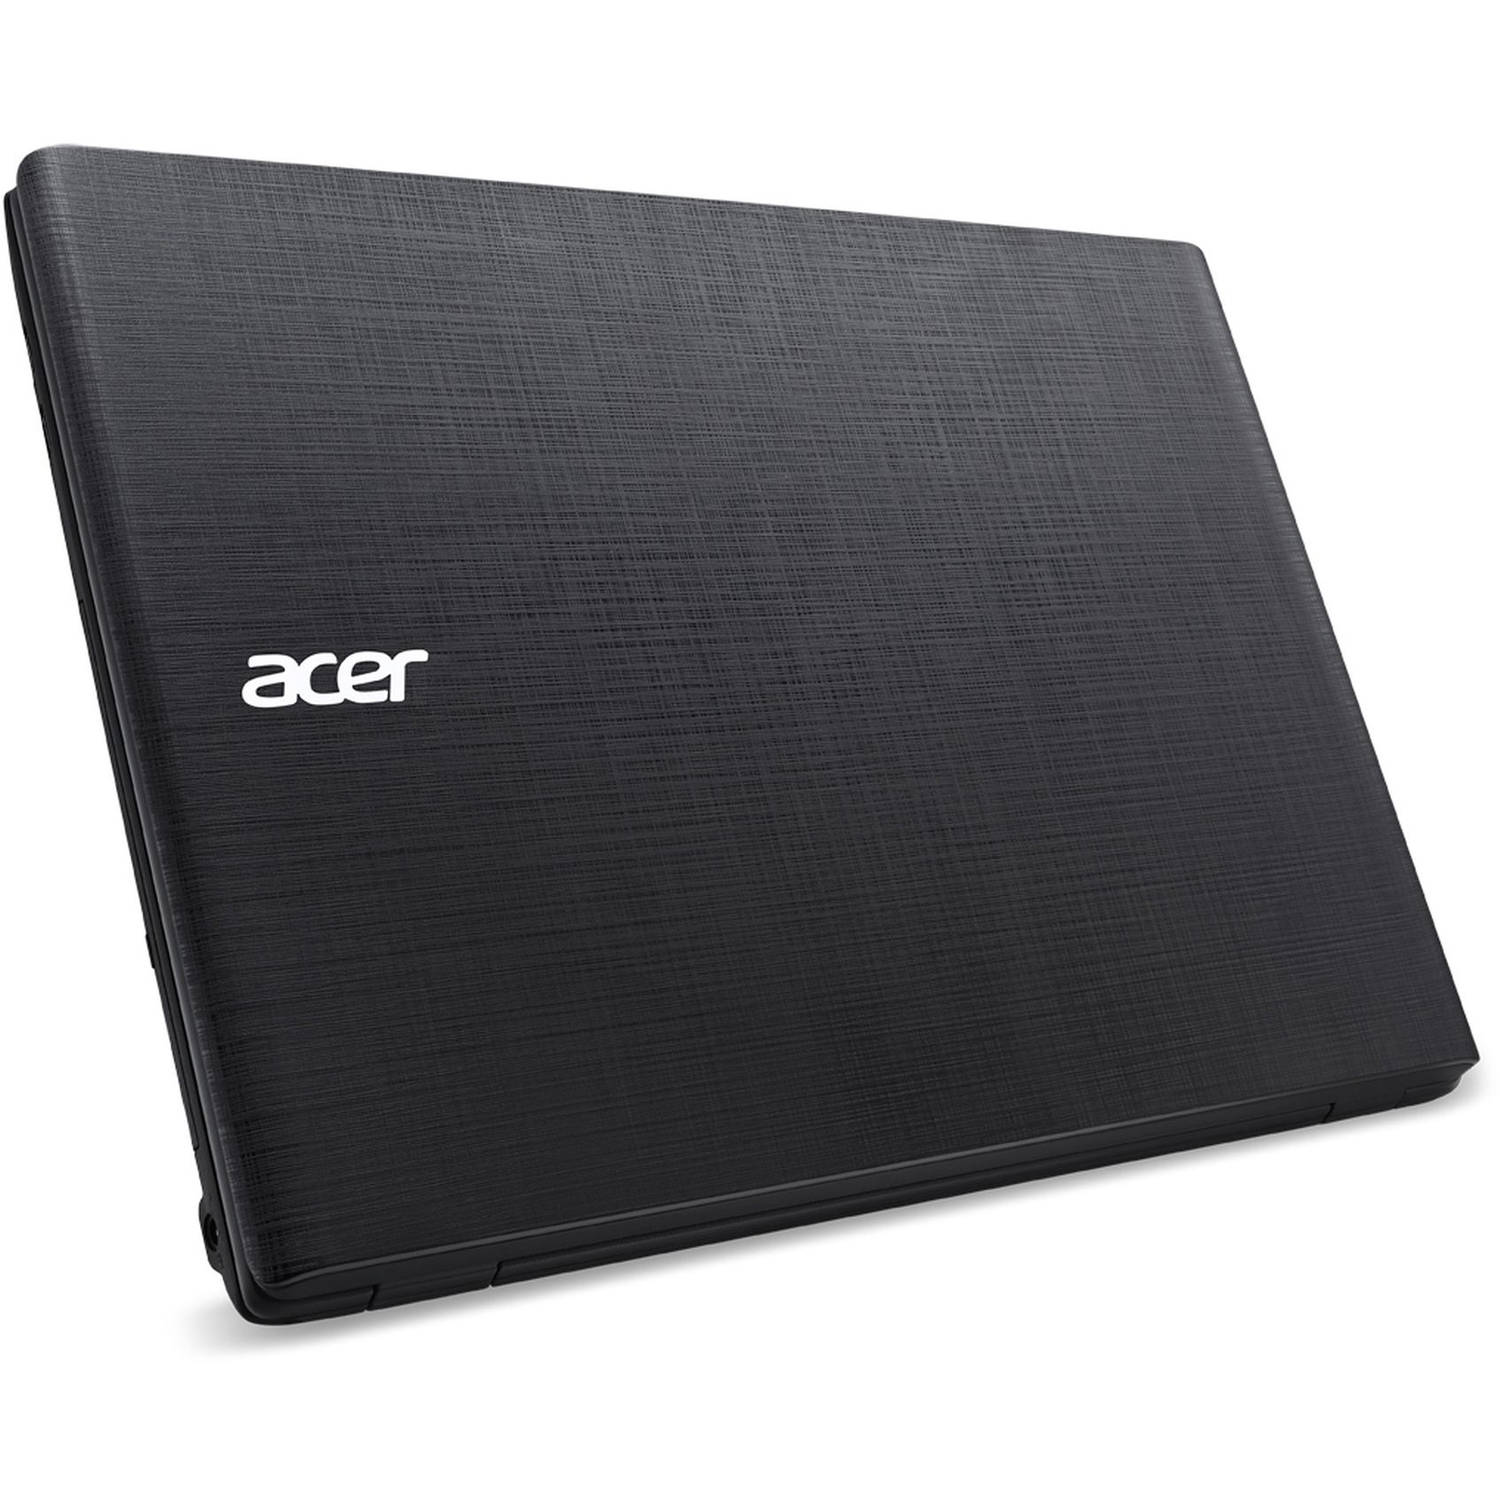 "Acer Black 17.3"" TravelMate P278 TMP278MG788Z Laptop PC with Intel Core i7-6500U Processor, 8GB Memory,... by Acer"